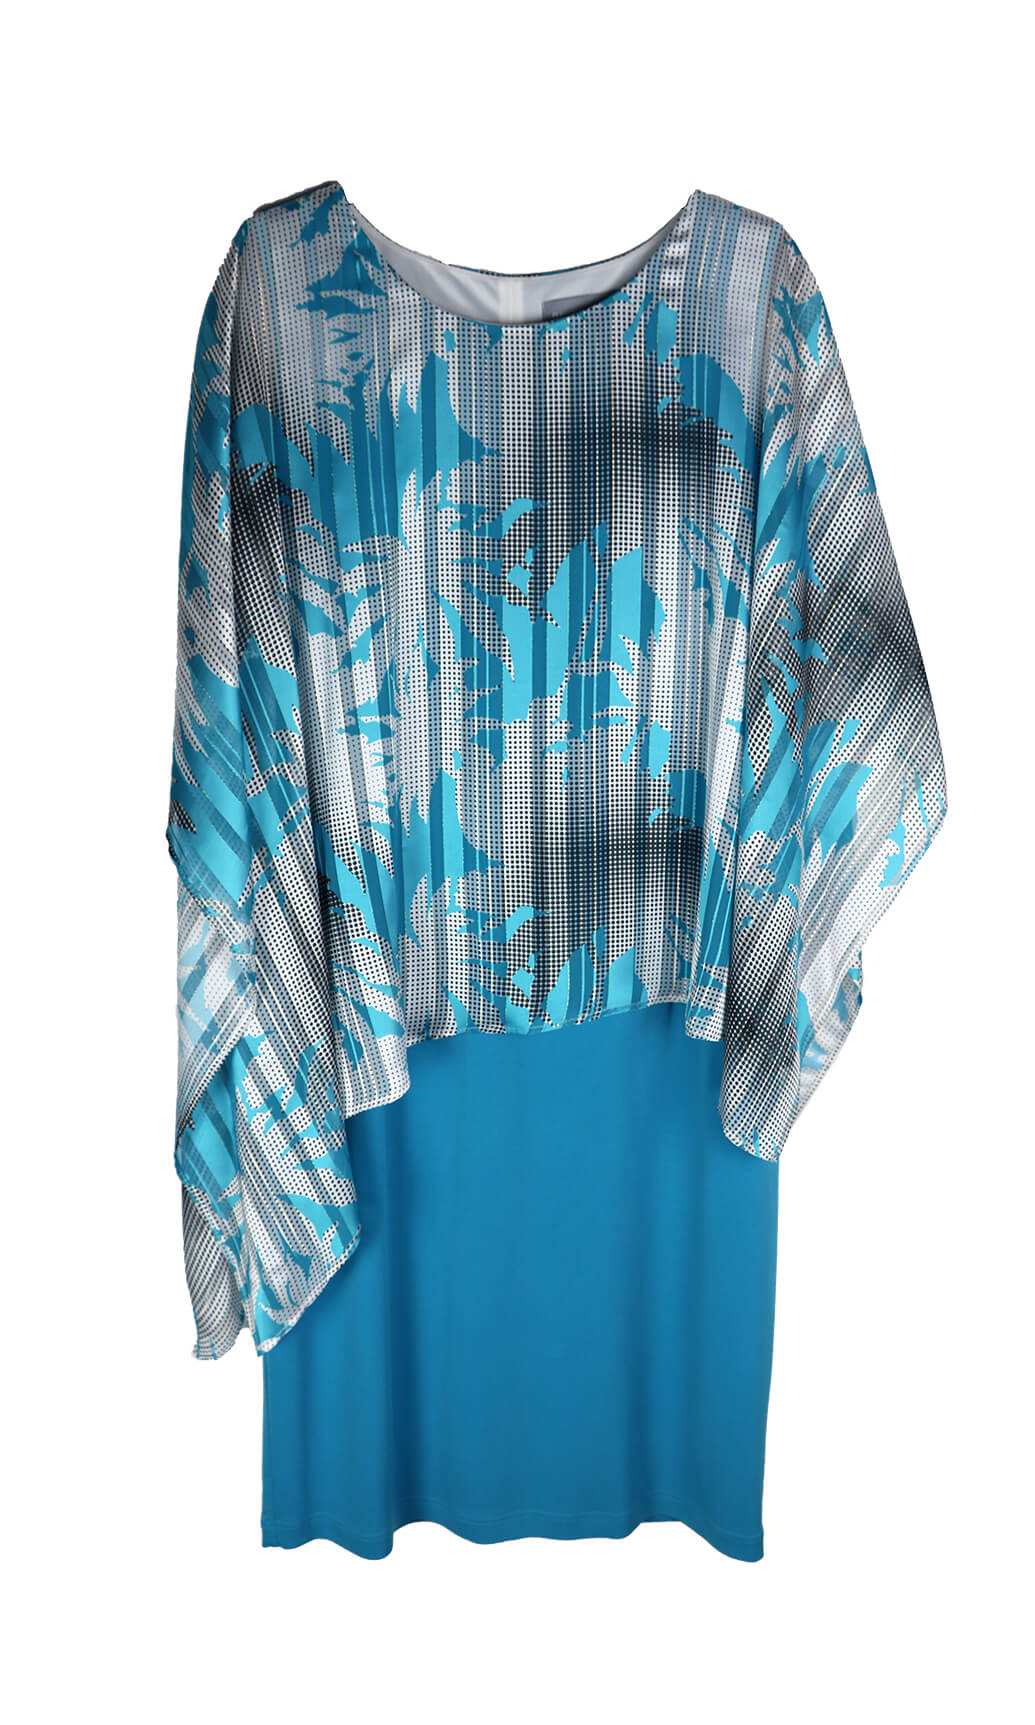 PCS20170 Turquoise Personal Choice Jersey Dress Abstract Cape - Fab Frocks